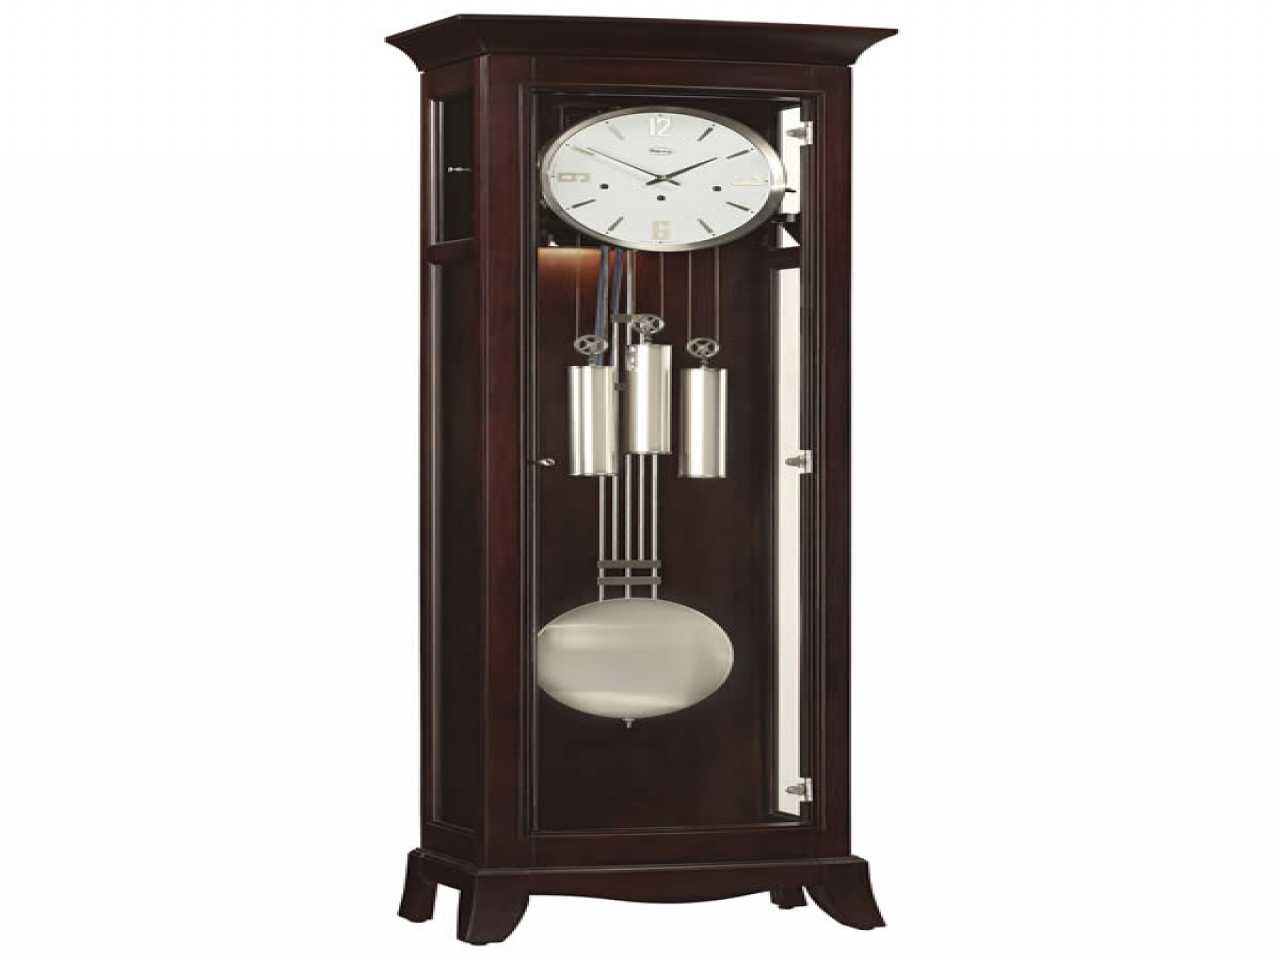 Wall Clock Mechanism | Howard Miller Clock Parts | Quartz Clock Kit